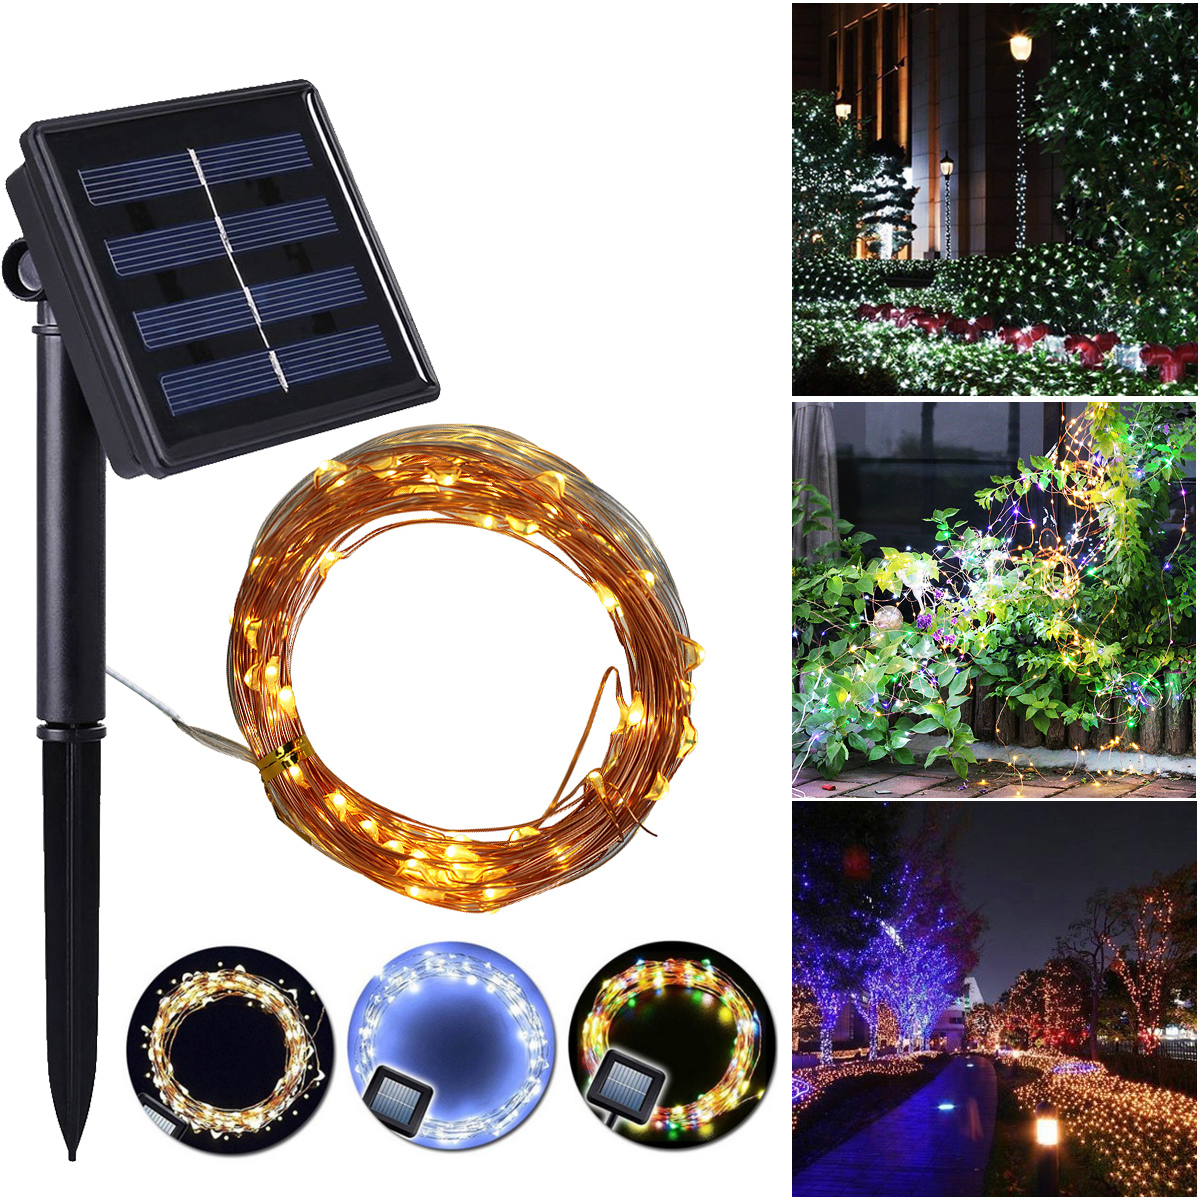 100/200 LED Solar Powered String Fairy Light Holiday Outdoor Waterproof Safe Copper Wire Lights For Festival Party Decor New